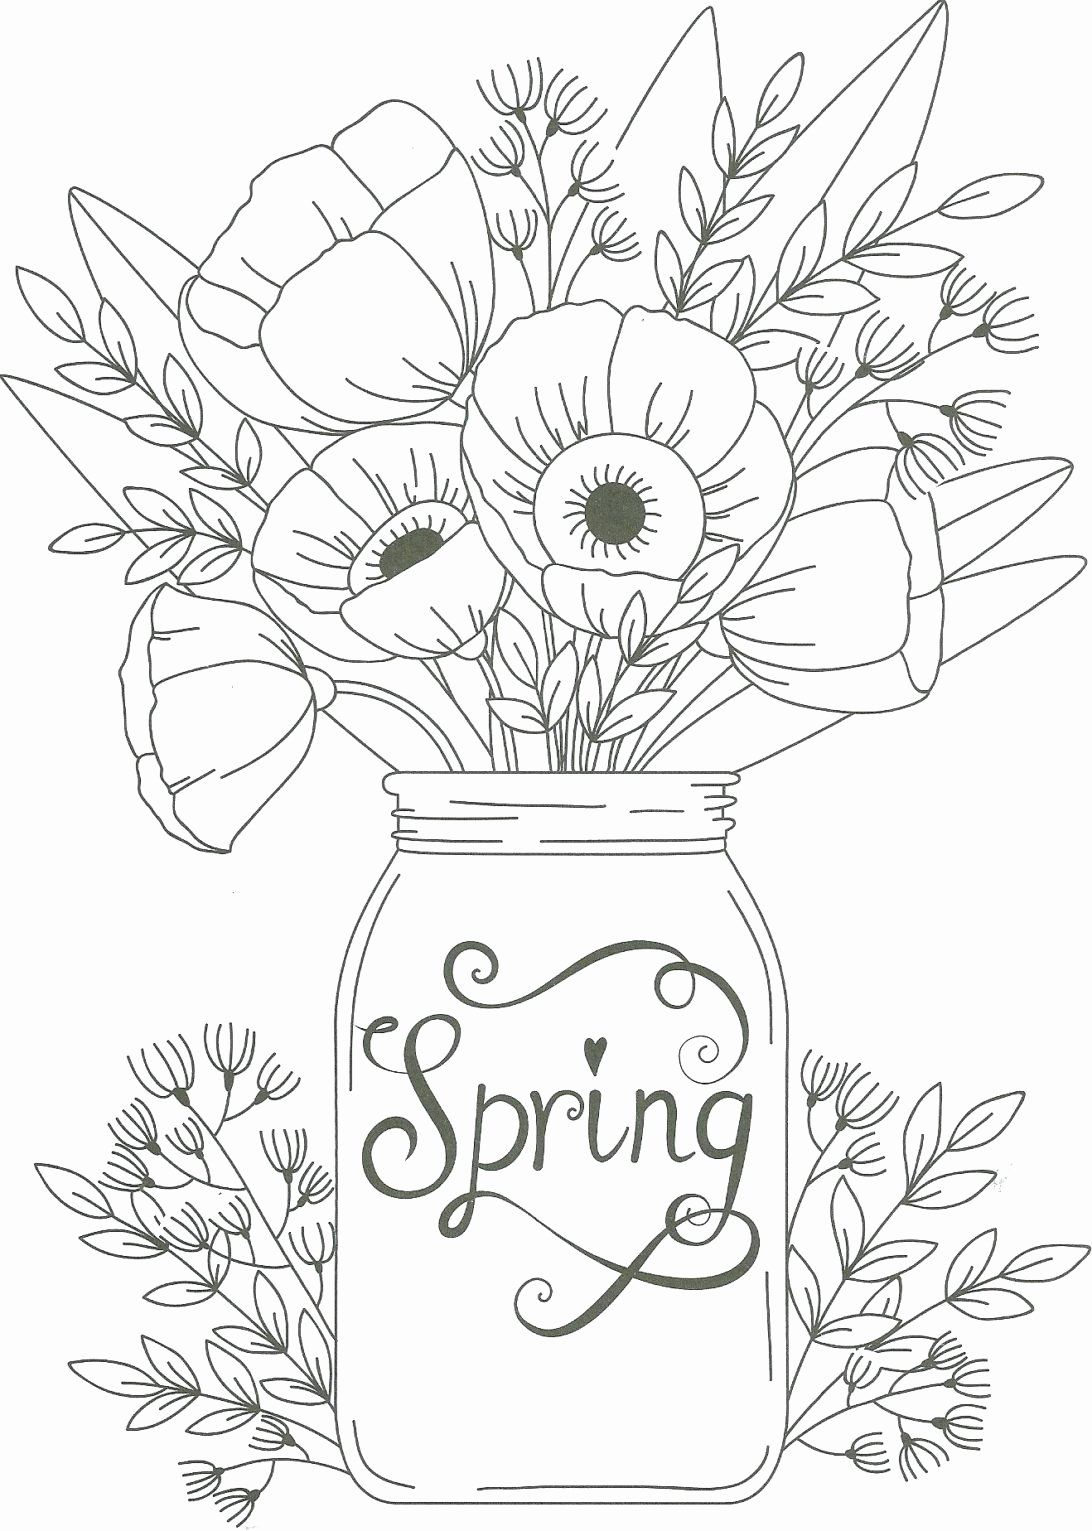 Bouquet Of Flowers Coloring Page Flower Coloring Pages Flower Coloring Sheets Printable Flower Coloring Pages